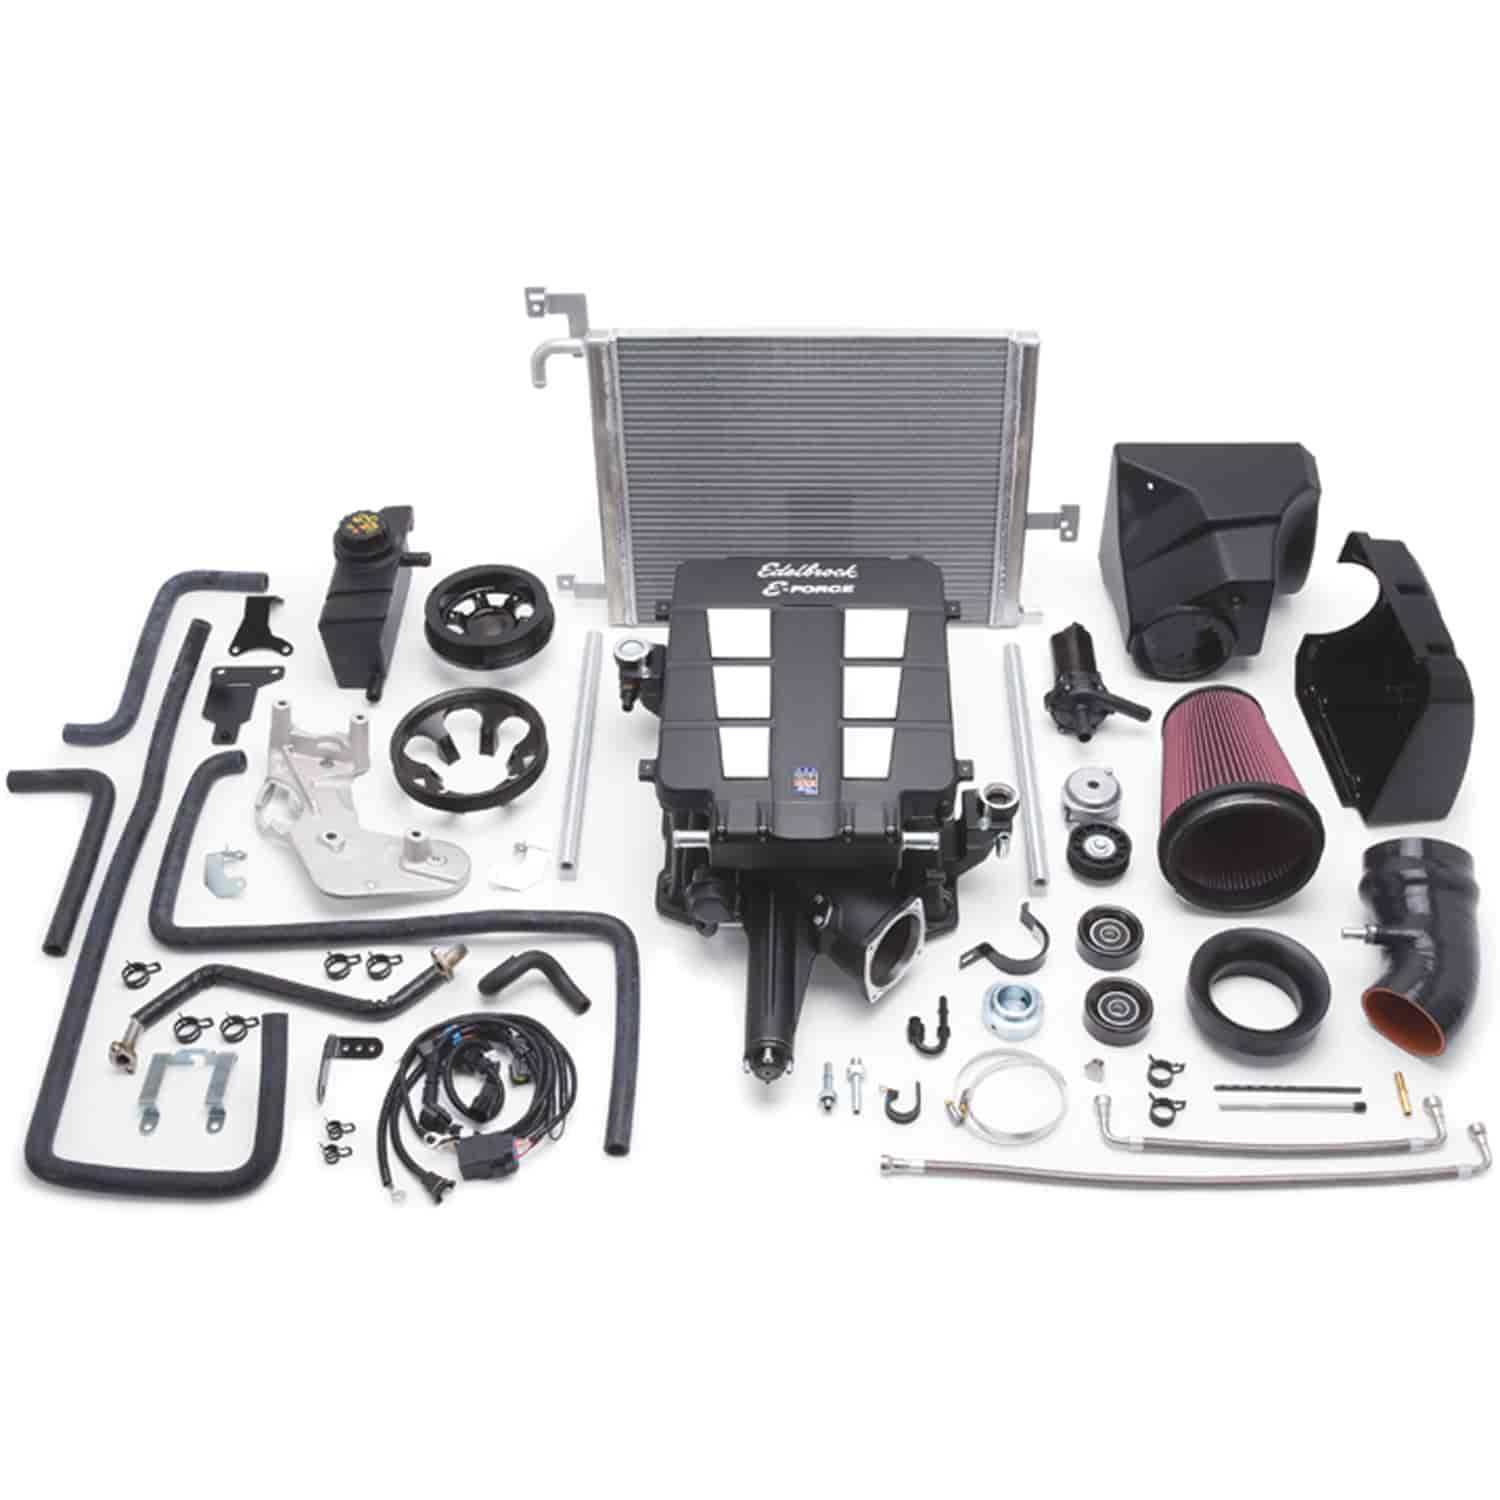 Edelbrock 1531 E Force Stage 3 Pro Tuner Supercharger System 2006 Throttle Body Wiring Harness 2007 Chrysler 300